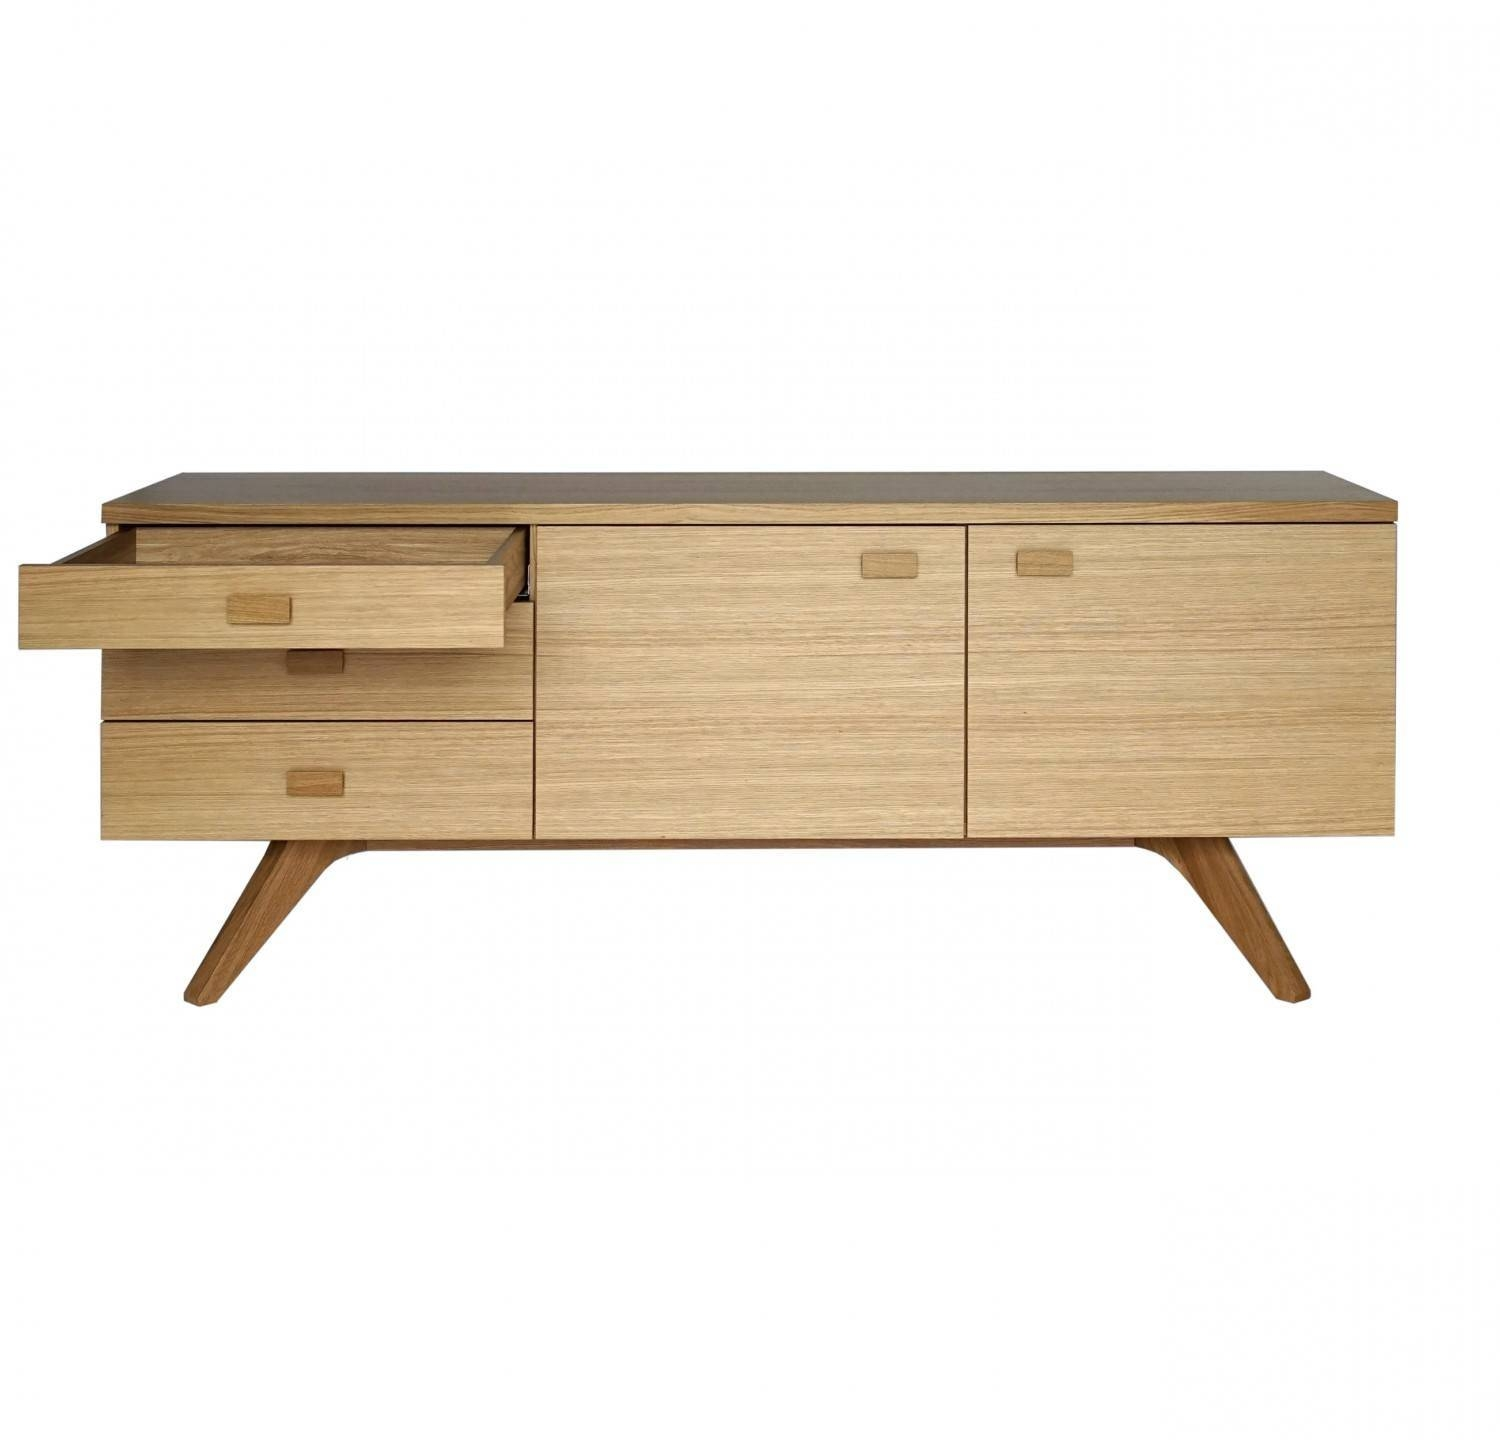 Cross Sideboardmatthew Hilton | Case Furniture within Oak Sideboards (Image 5 of 30)